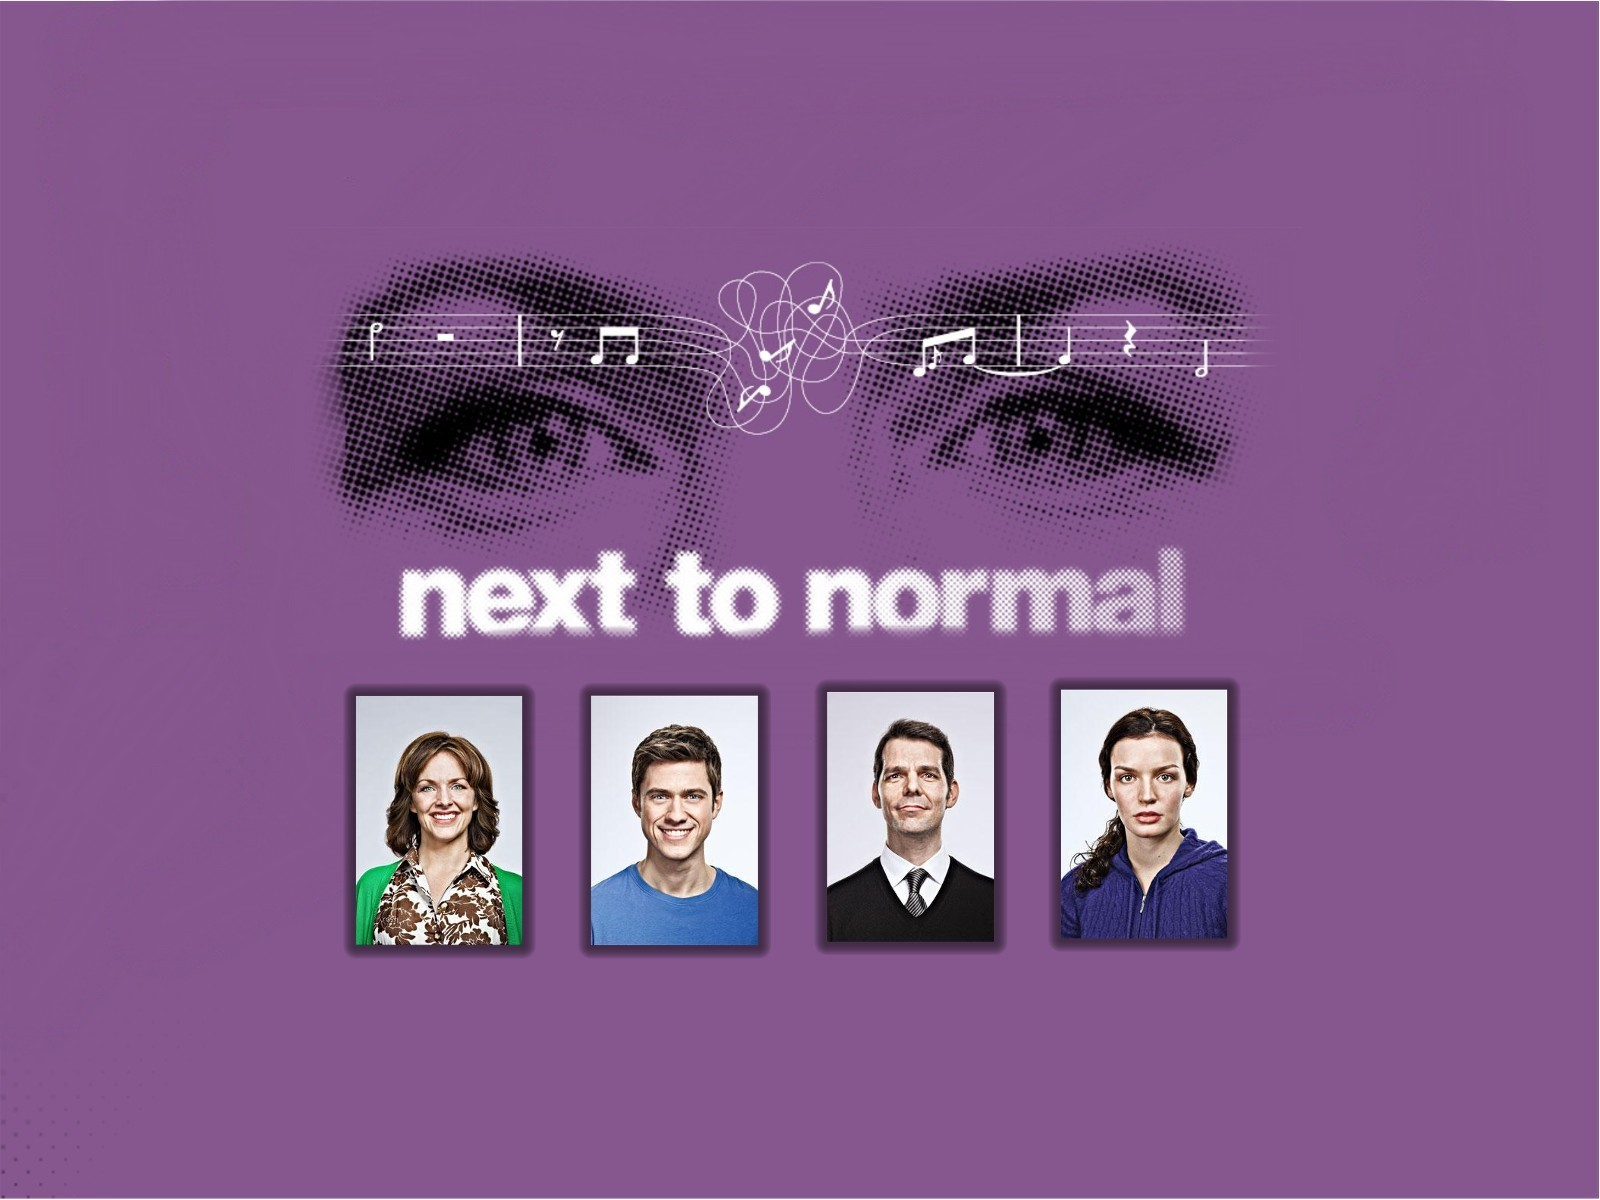 Next To Normal images Next To Normal 1200x1600 HD wallpaper and background photos